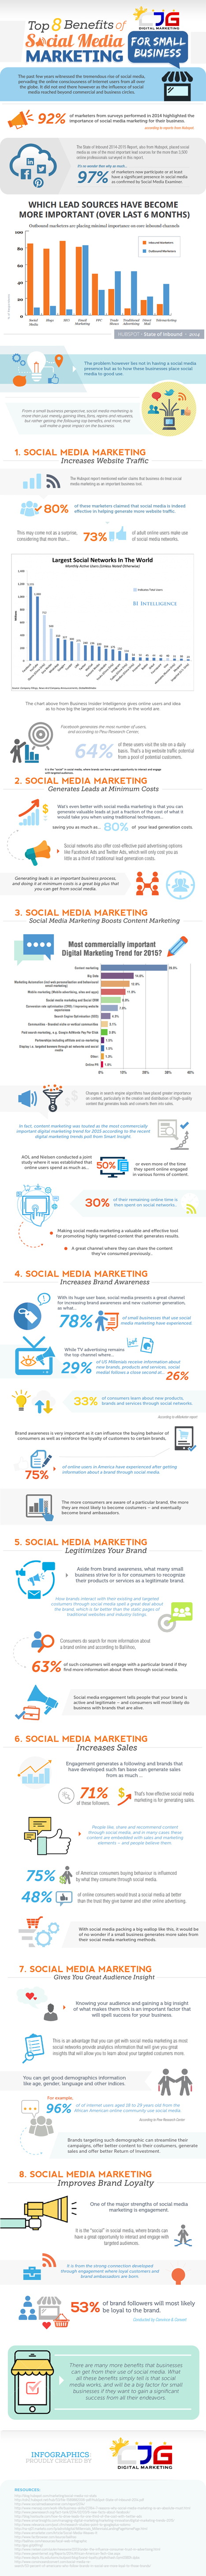 Top 8 Benefits of Social Media Marketing for Small Business (Infographic) | digital marketing strategy | Scoop.it